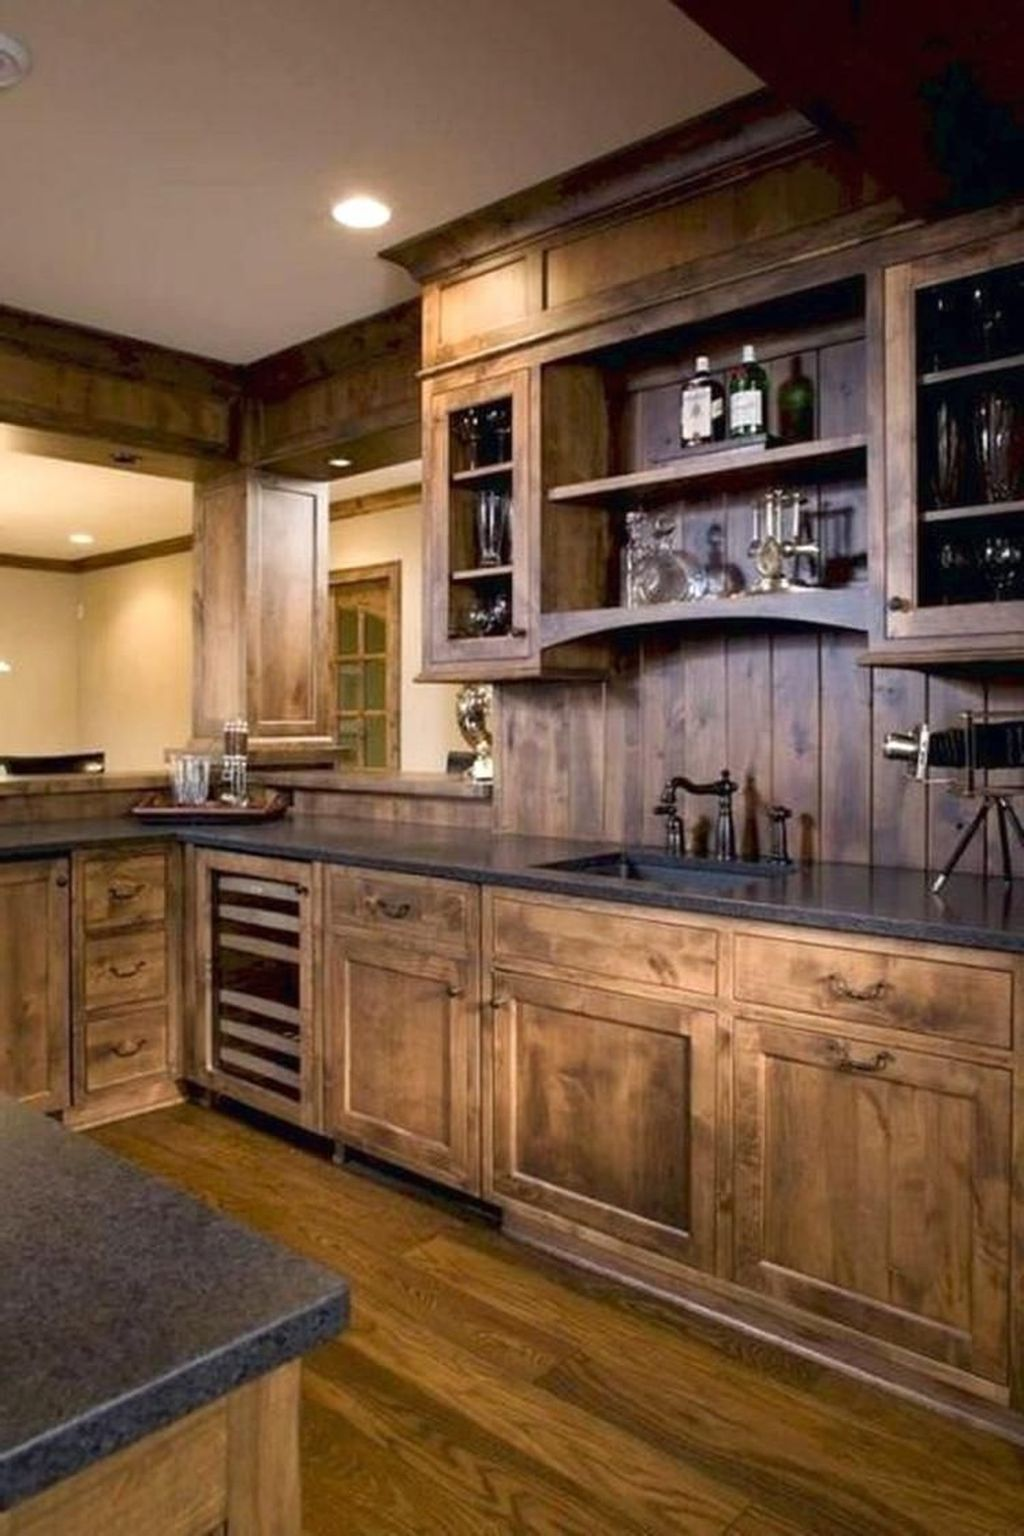 42 Lovely Rustic Western Style Kitchen Decorations Ideas images